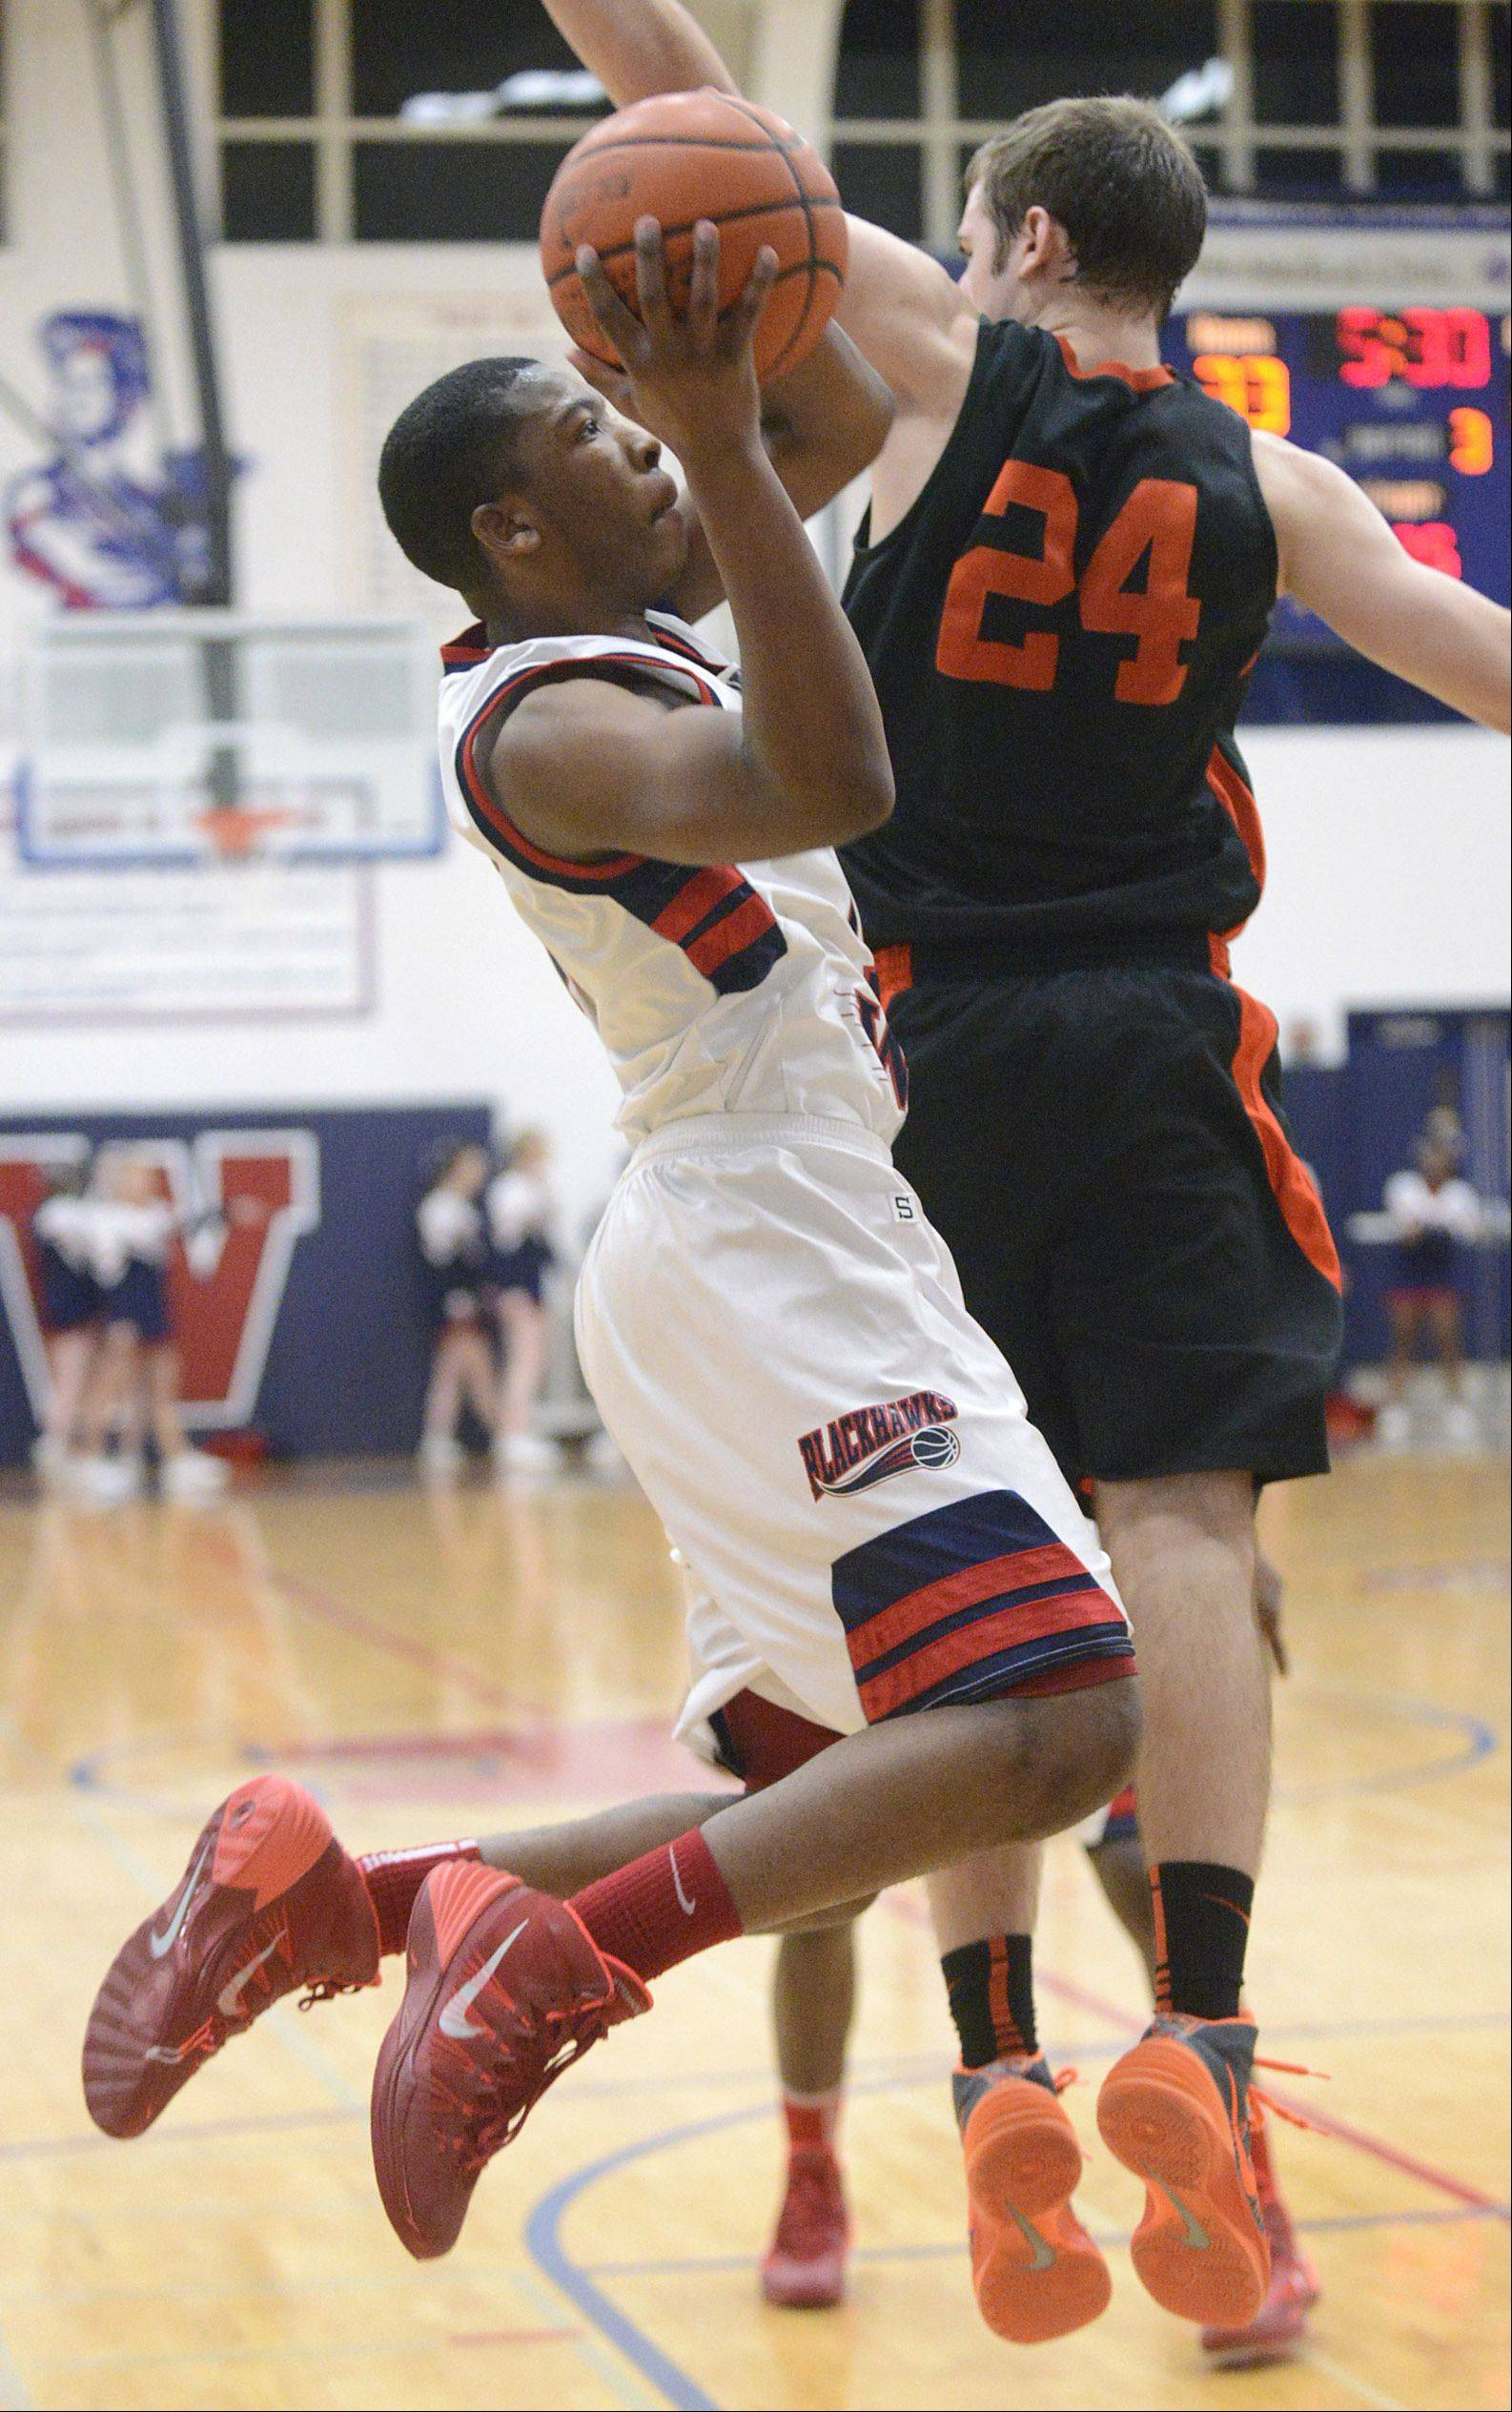 Wheaton Warrenville South's Matt Kienzle tries to block a shot by West Aurora's Jontrell Walker in the third quarter.